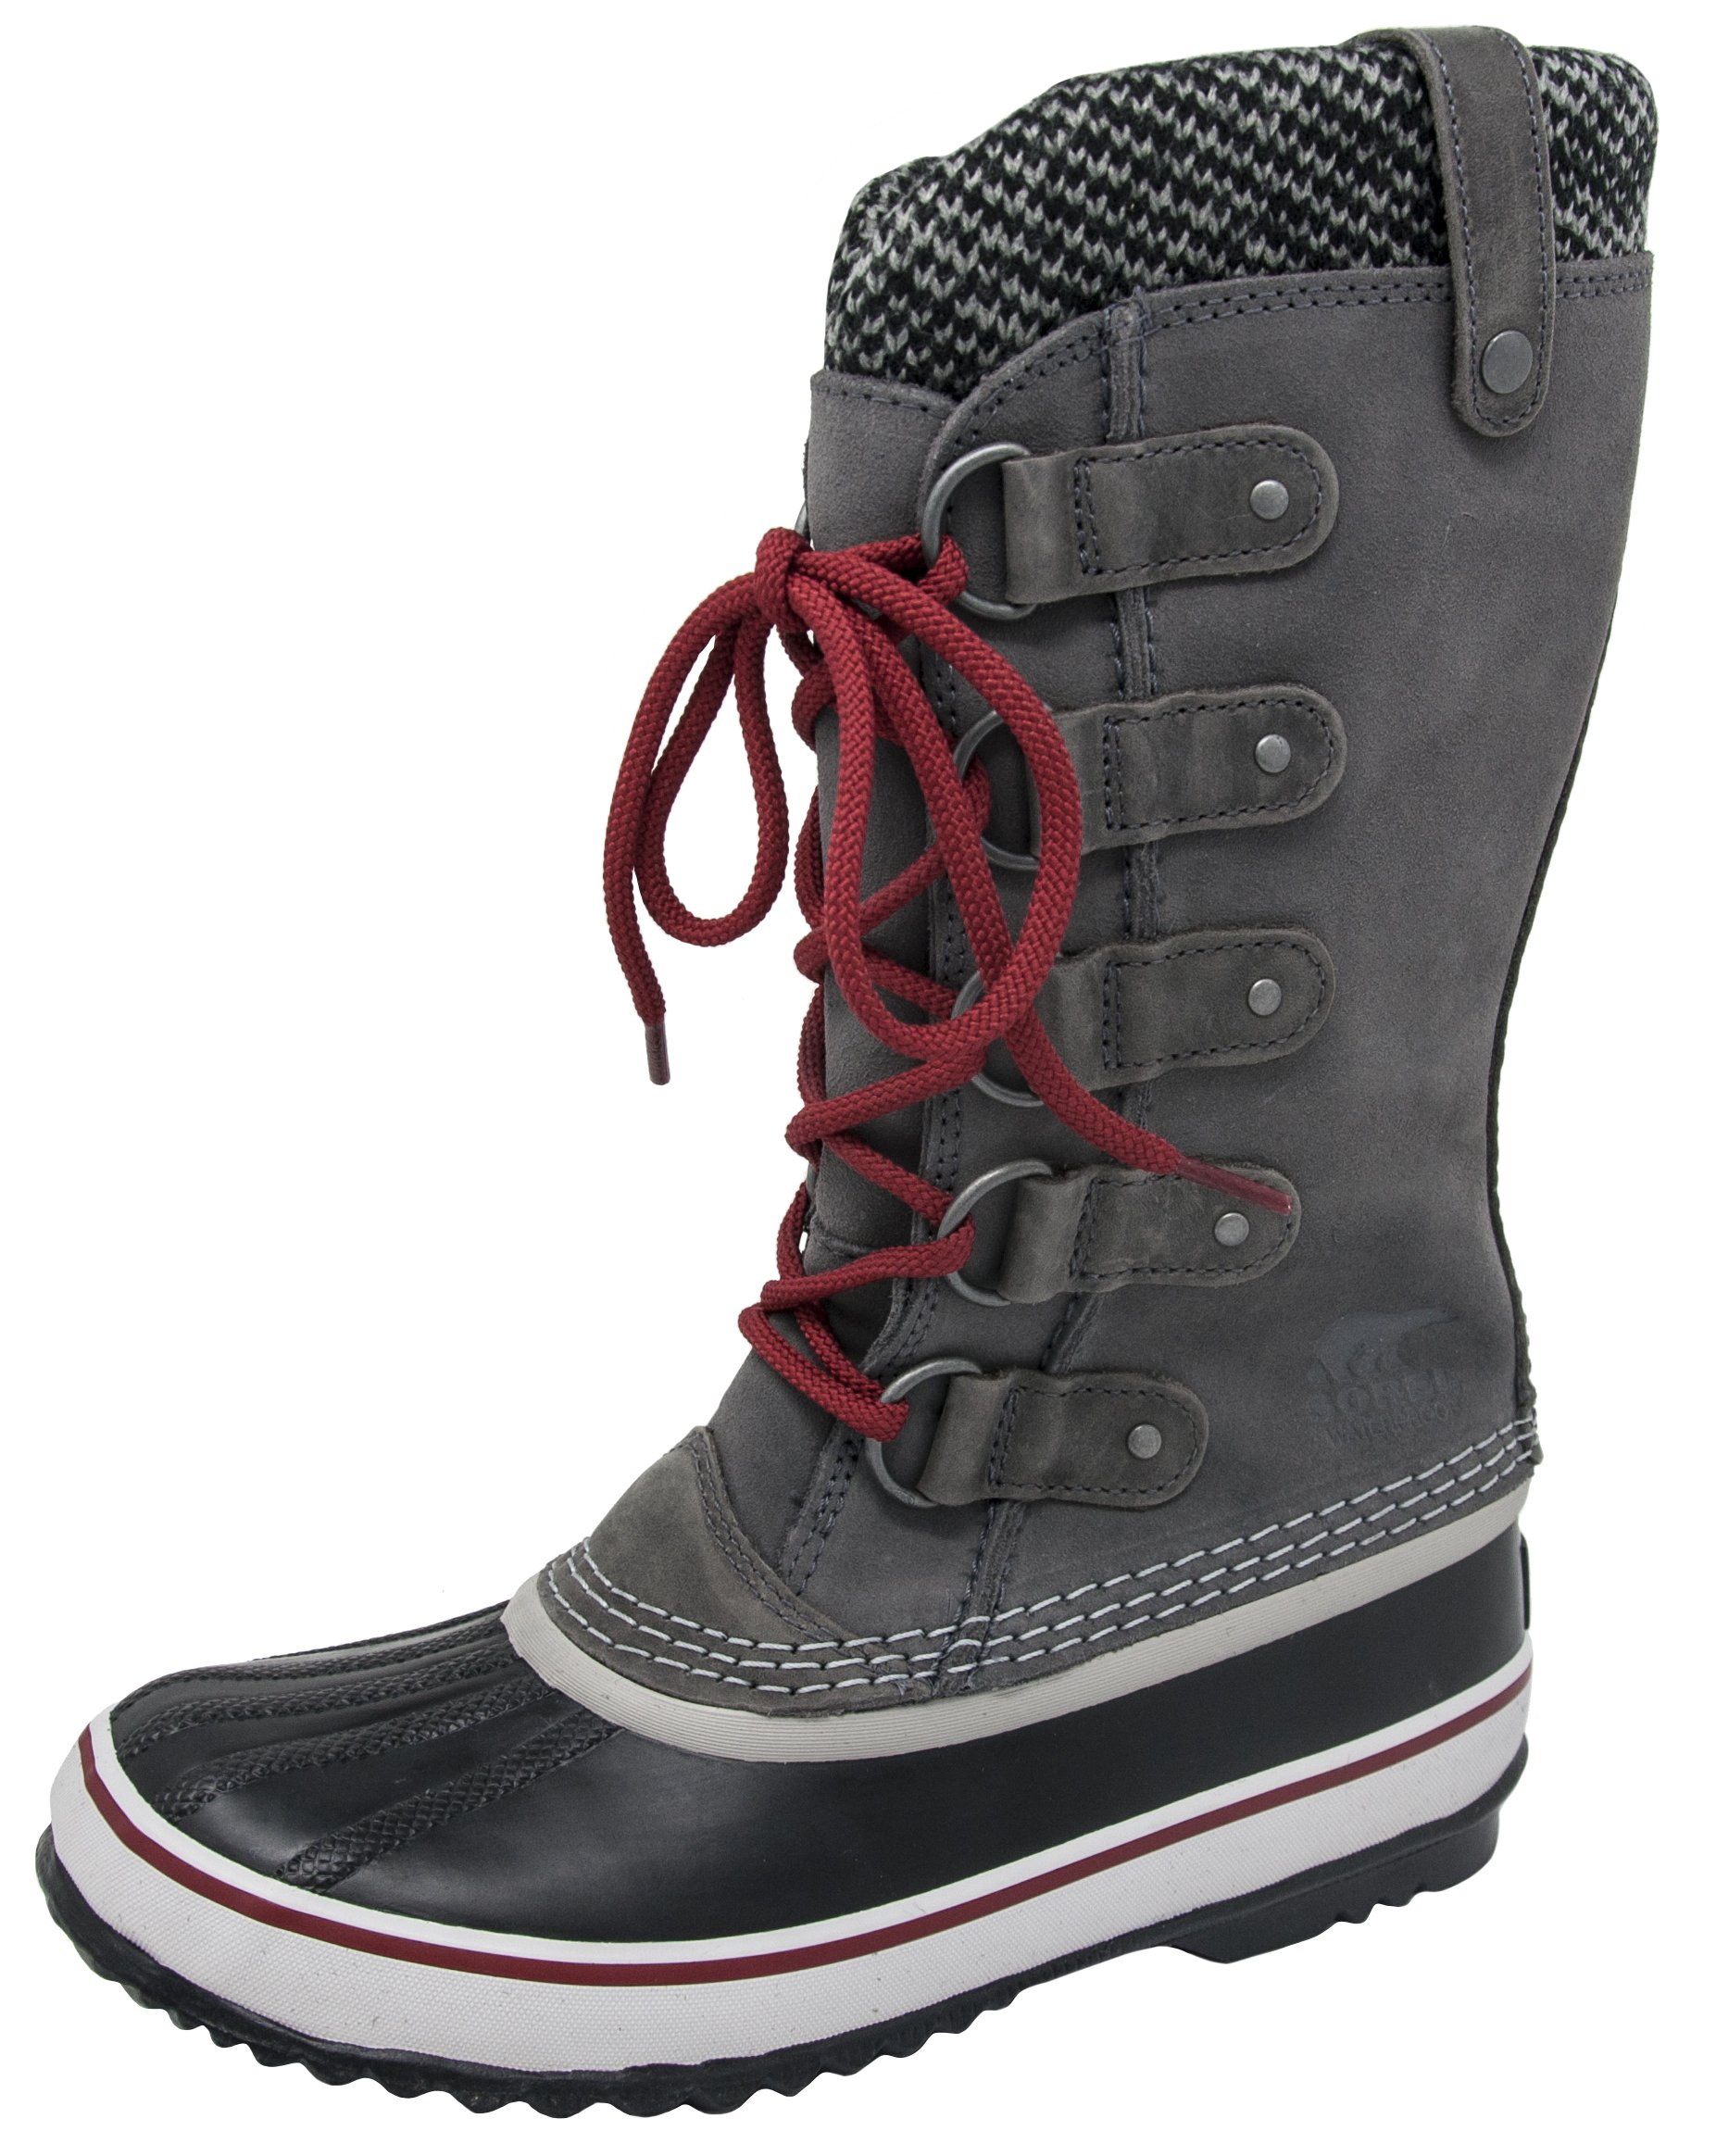 Sorel Women's Joan of Arctic Knit Boot (9.5 B(M) US, Quary Red/Dahlia)